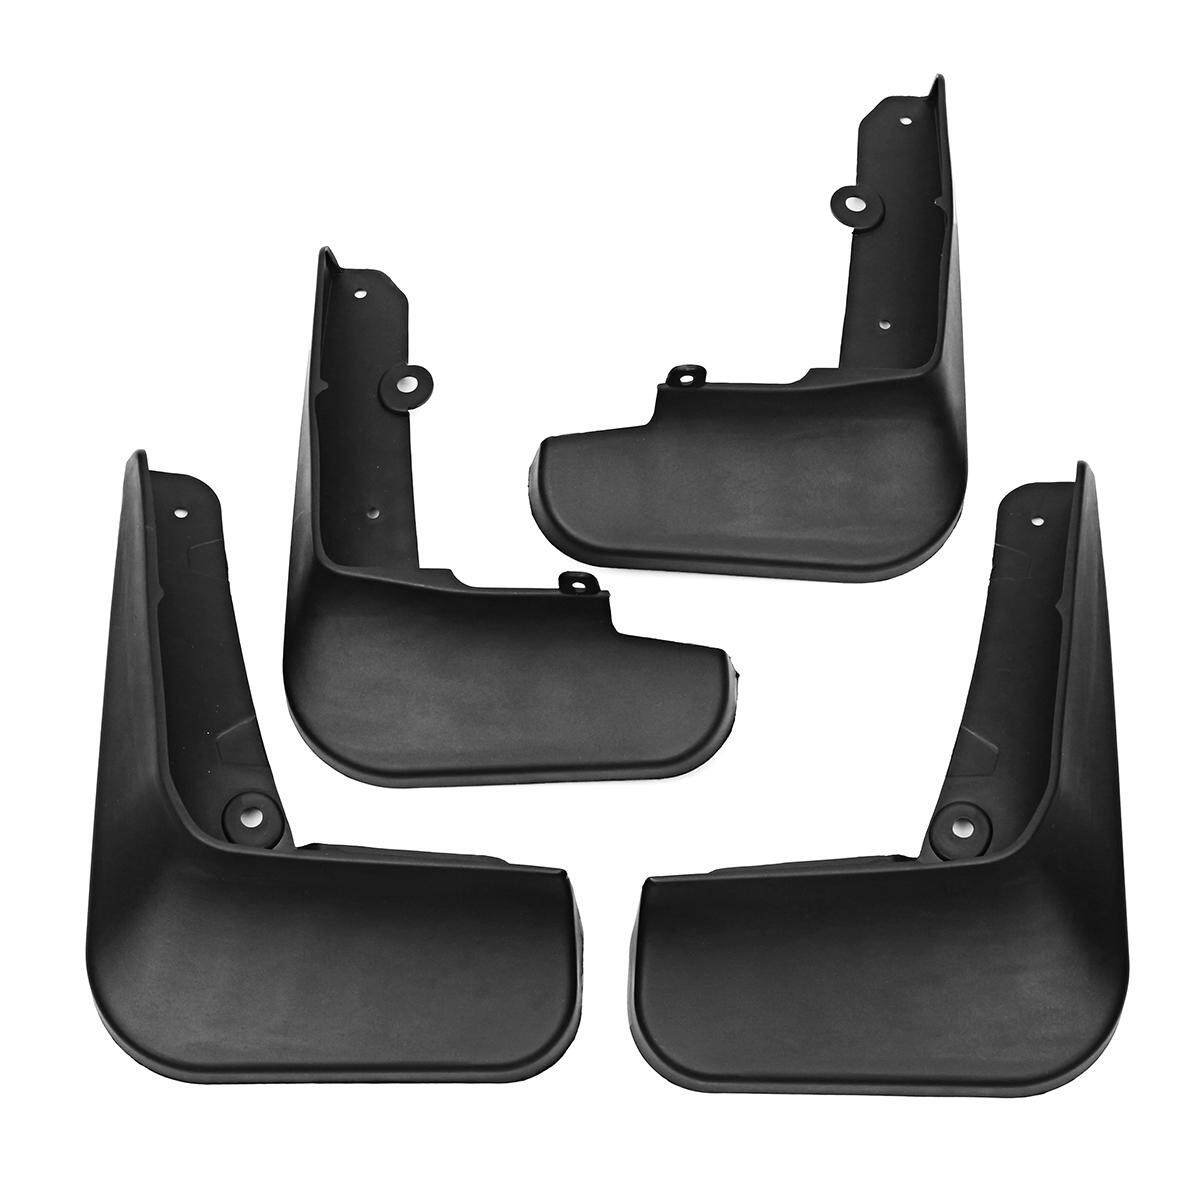 4pcs car Front Rear Mud Flap Mudguards for 2017 Mazda CX-5 CX5 - intl